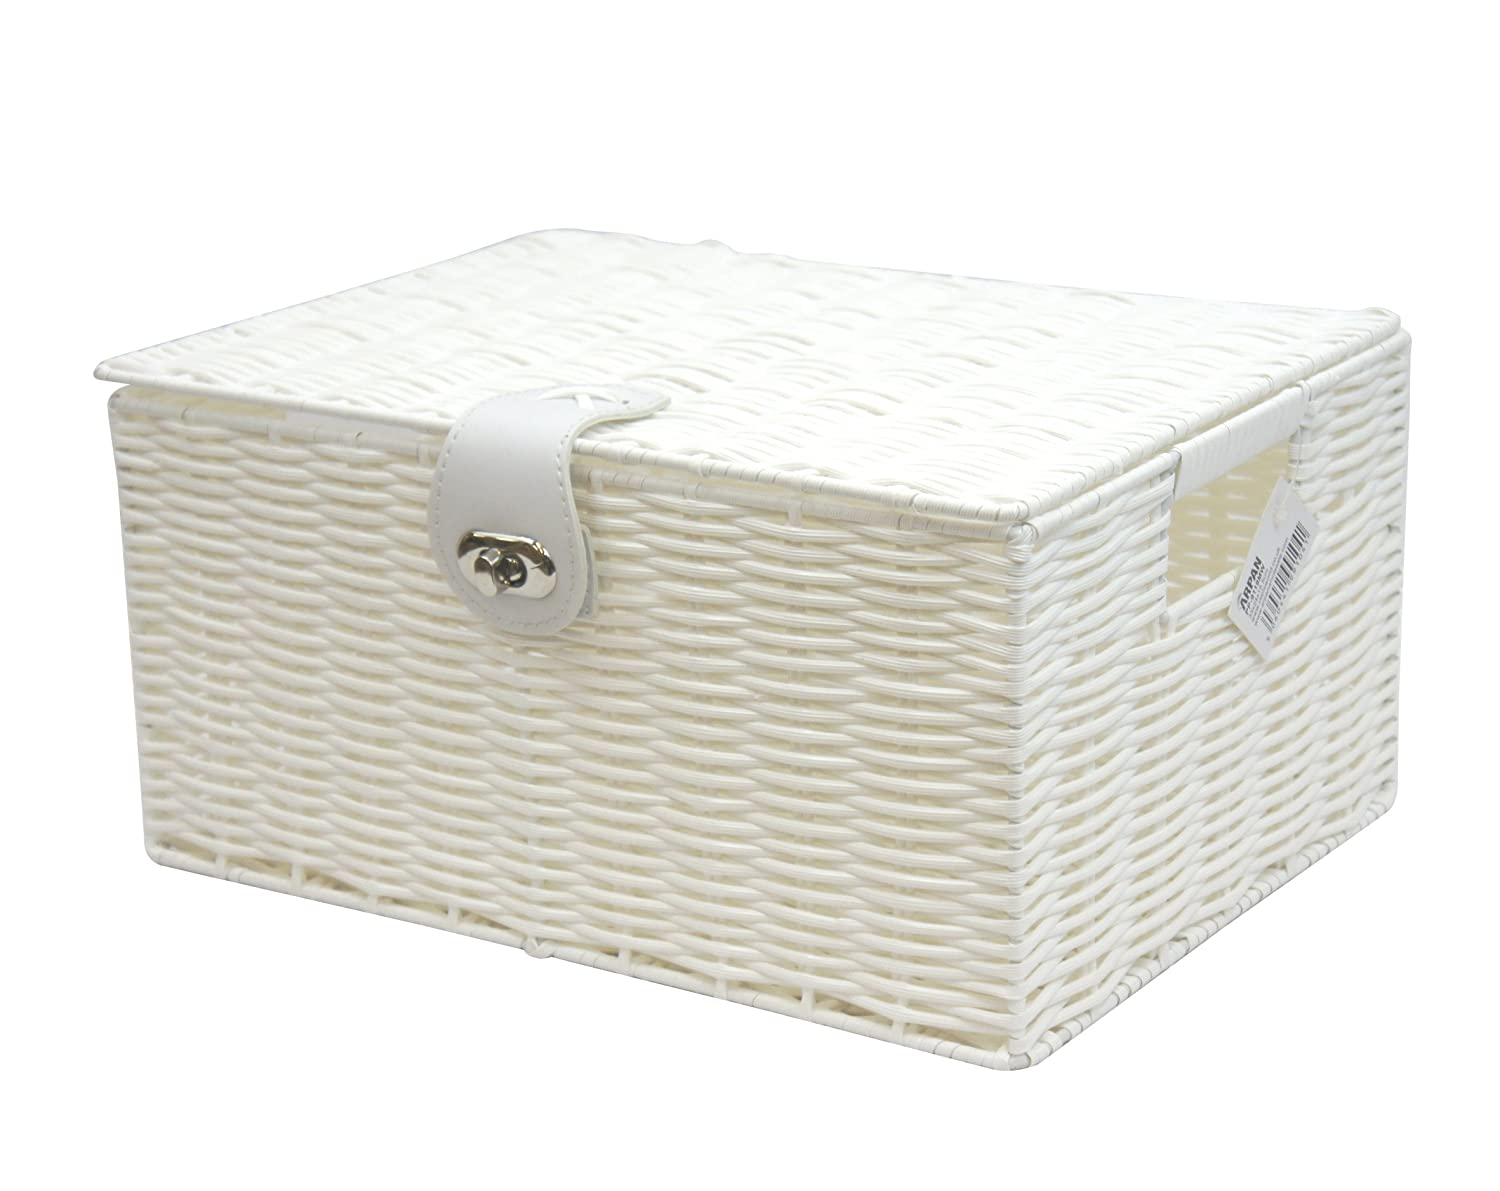 Arpan Medium Resin Woven Storage Basket Box With Lid & Lock - White